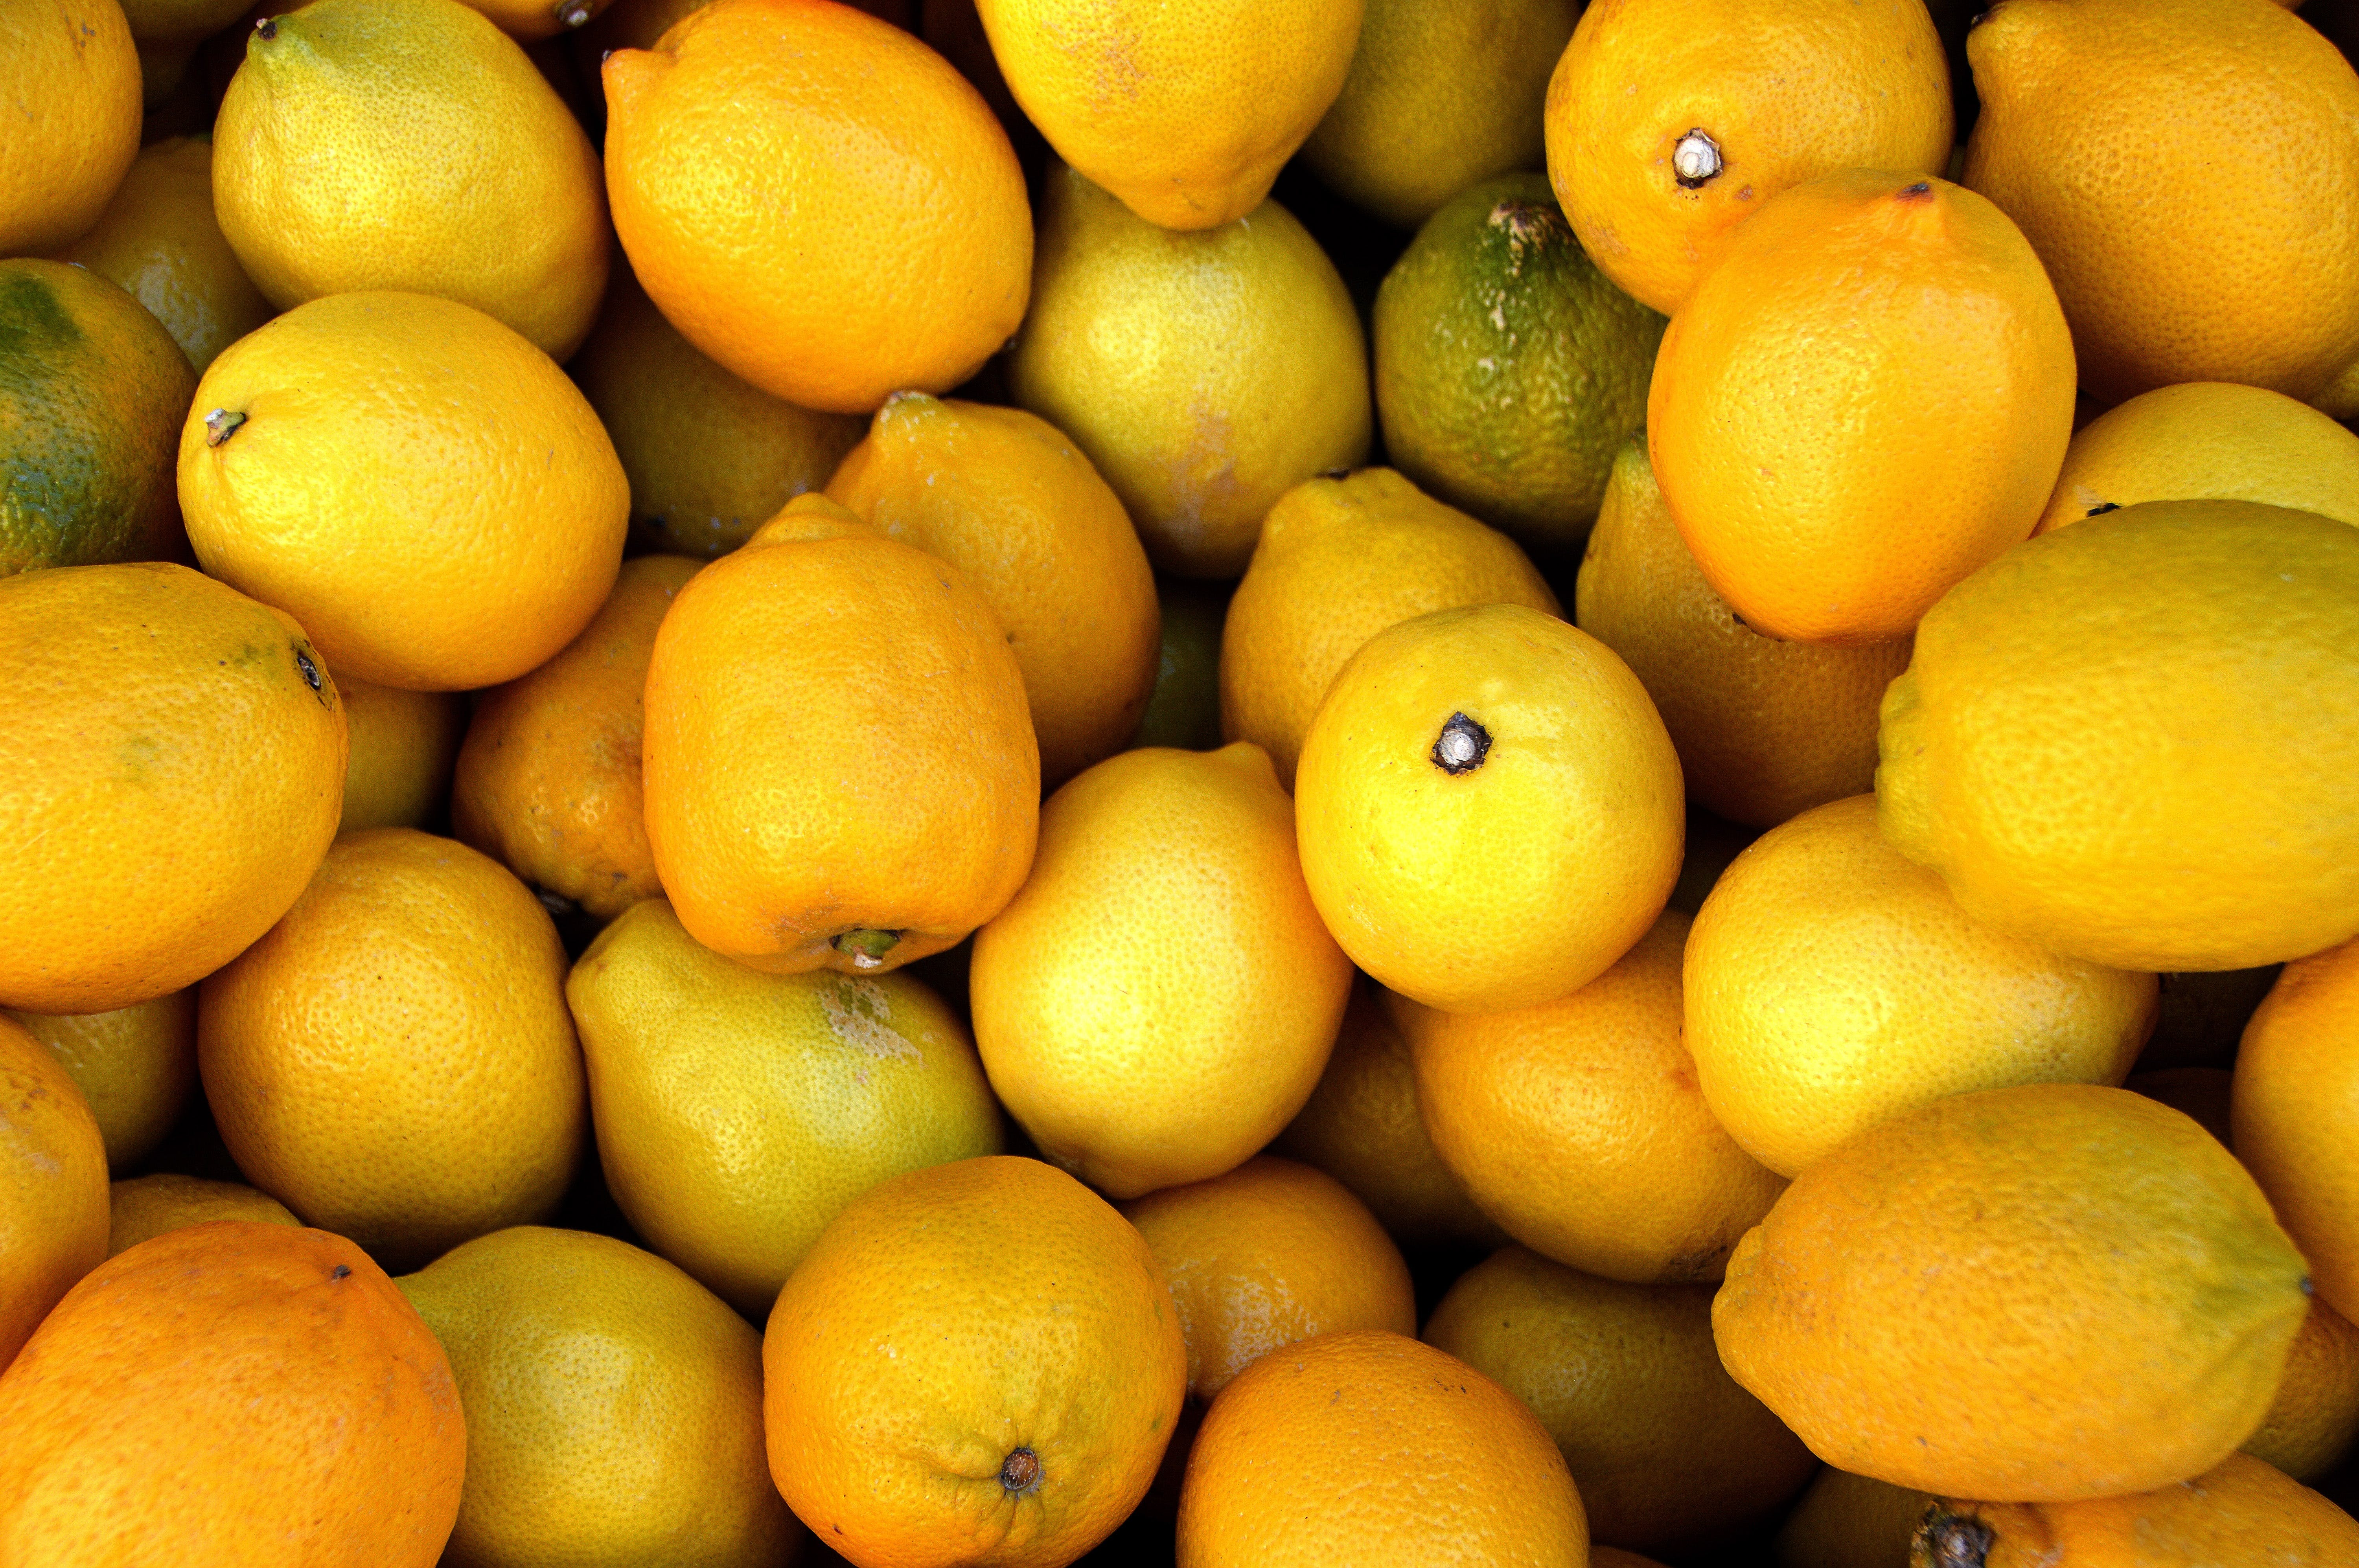 Bunch of Yellow Citrus